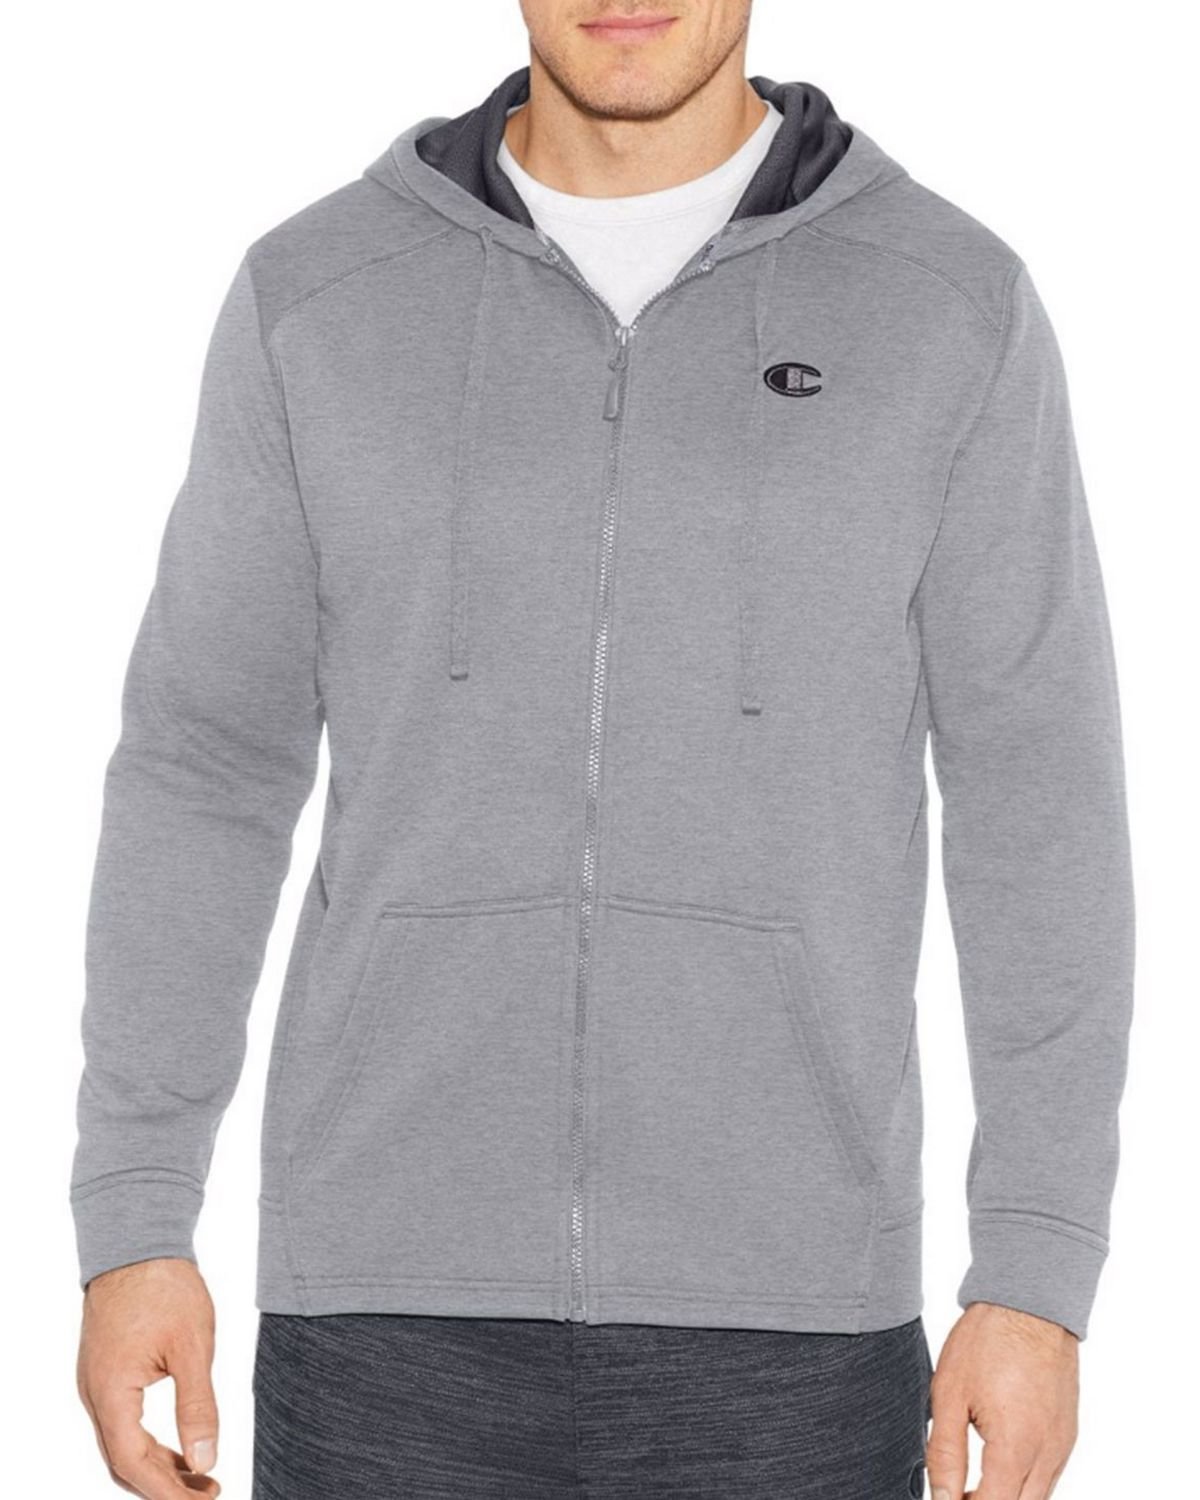 Champion S31228 Mens Full Zip Hoodie - Oxford Grey - XL S31228